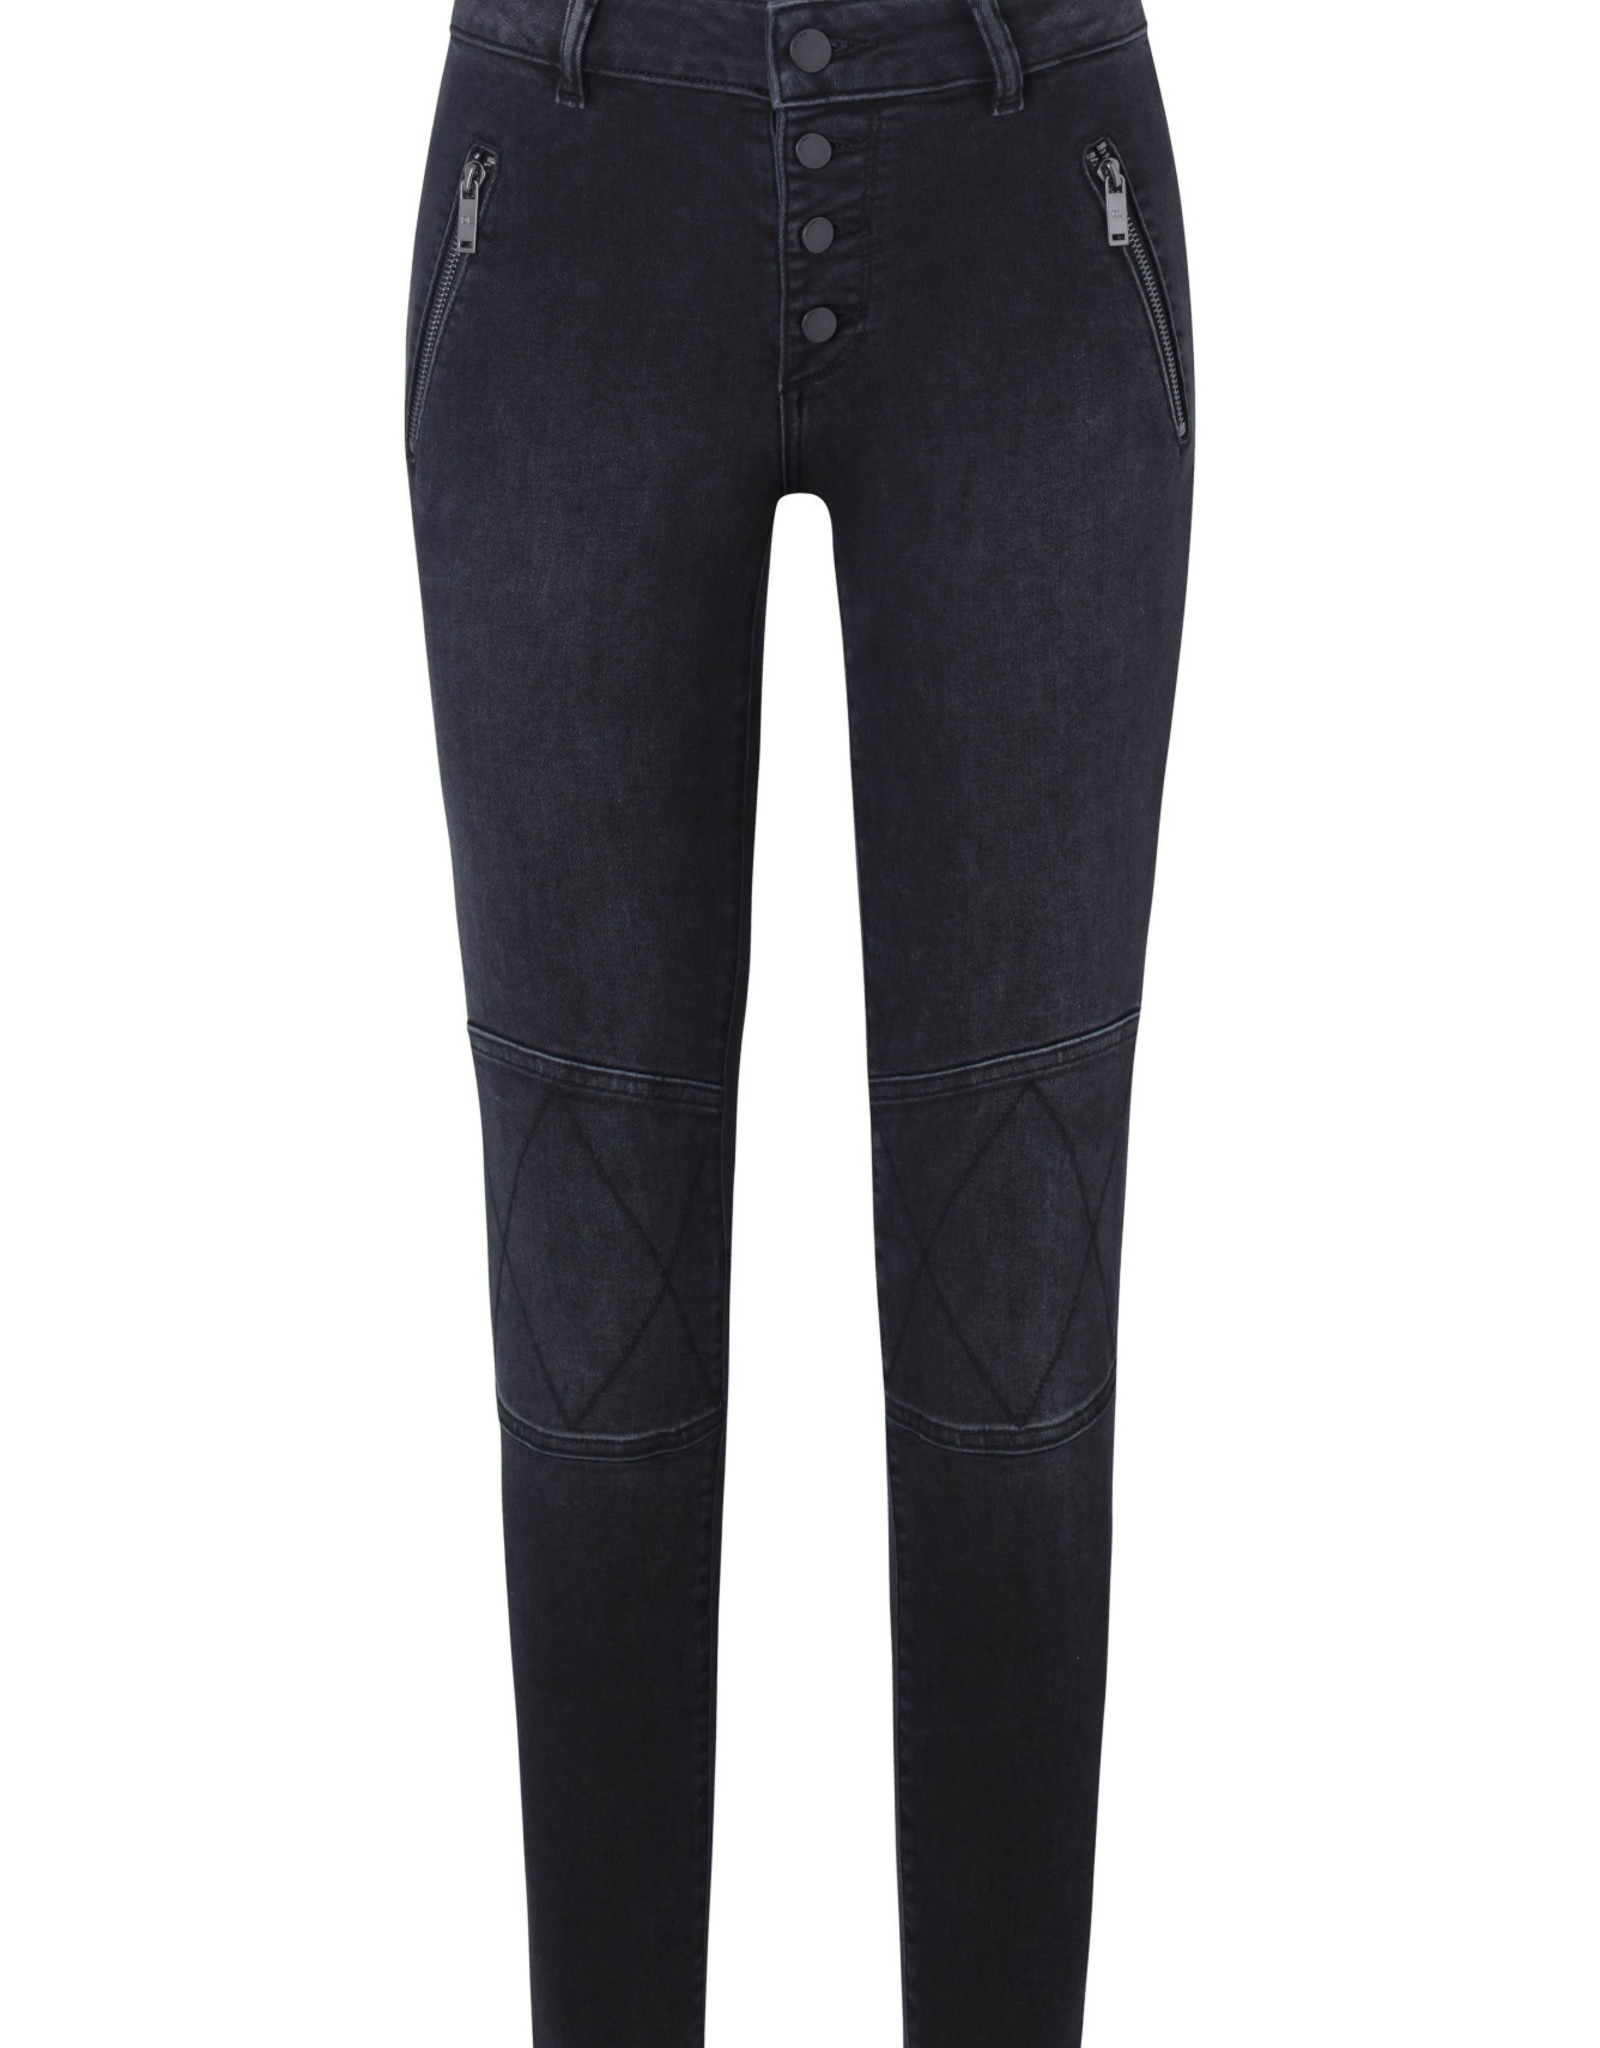 DL1961 DL1961 Florence Mid-Rise Skinny Ankle Prescot